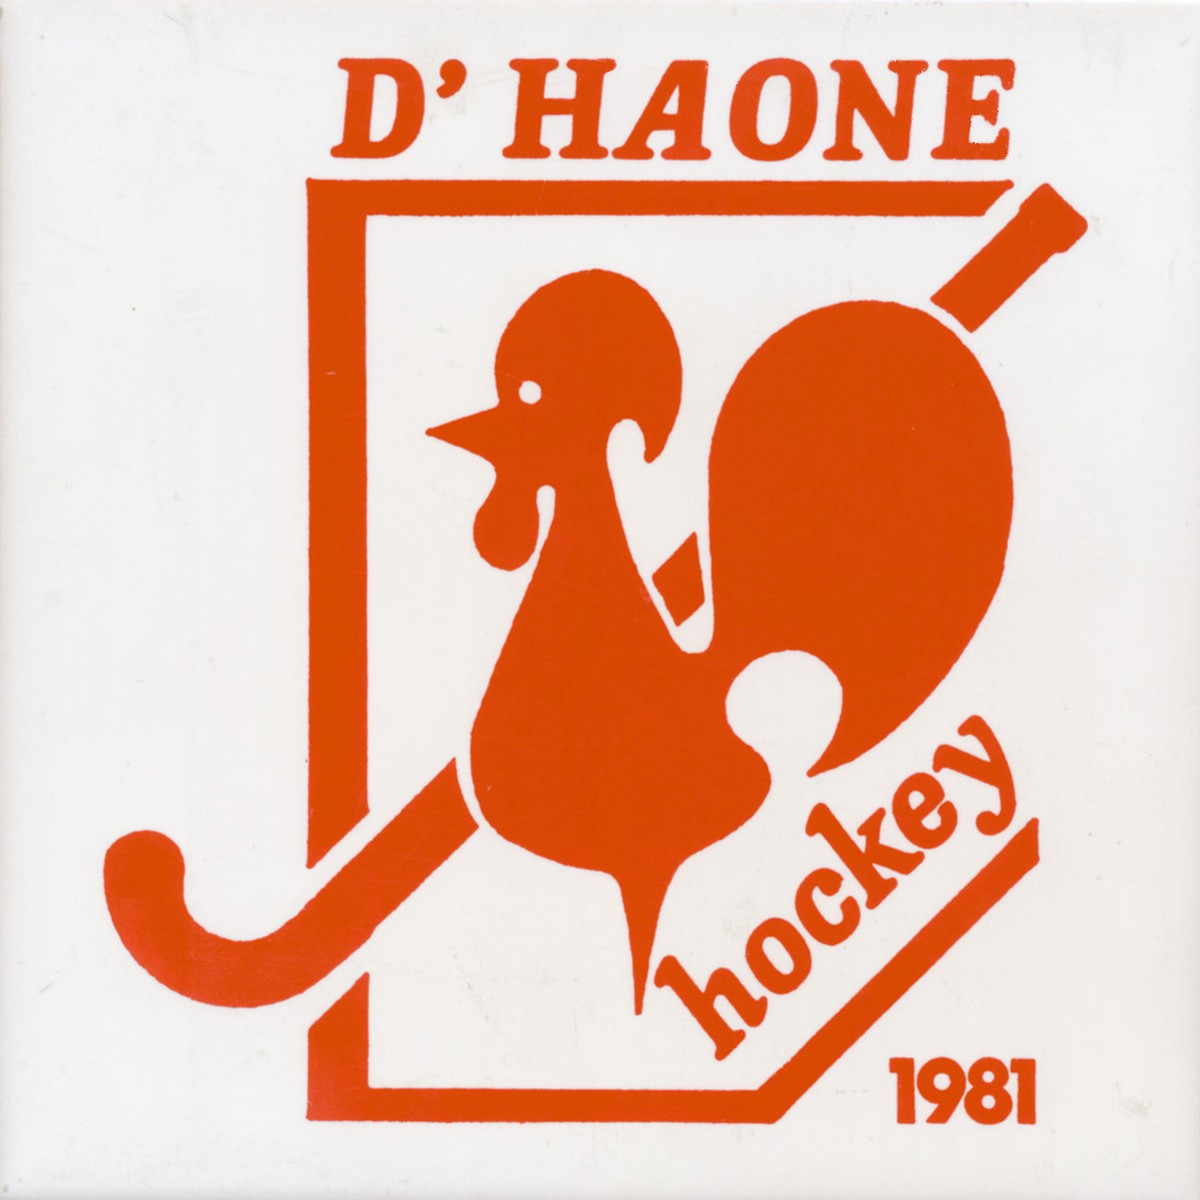 1981 D Haone hockey tegel